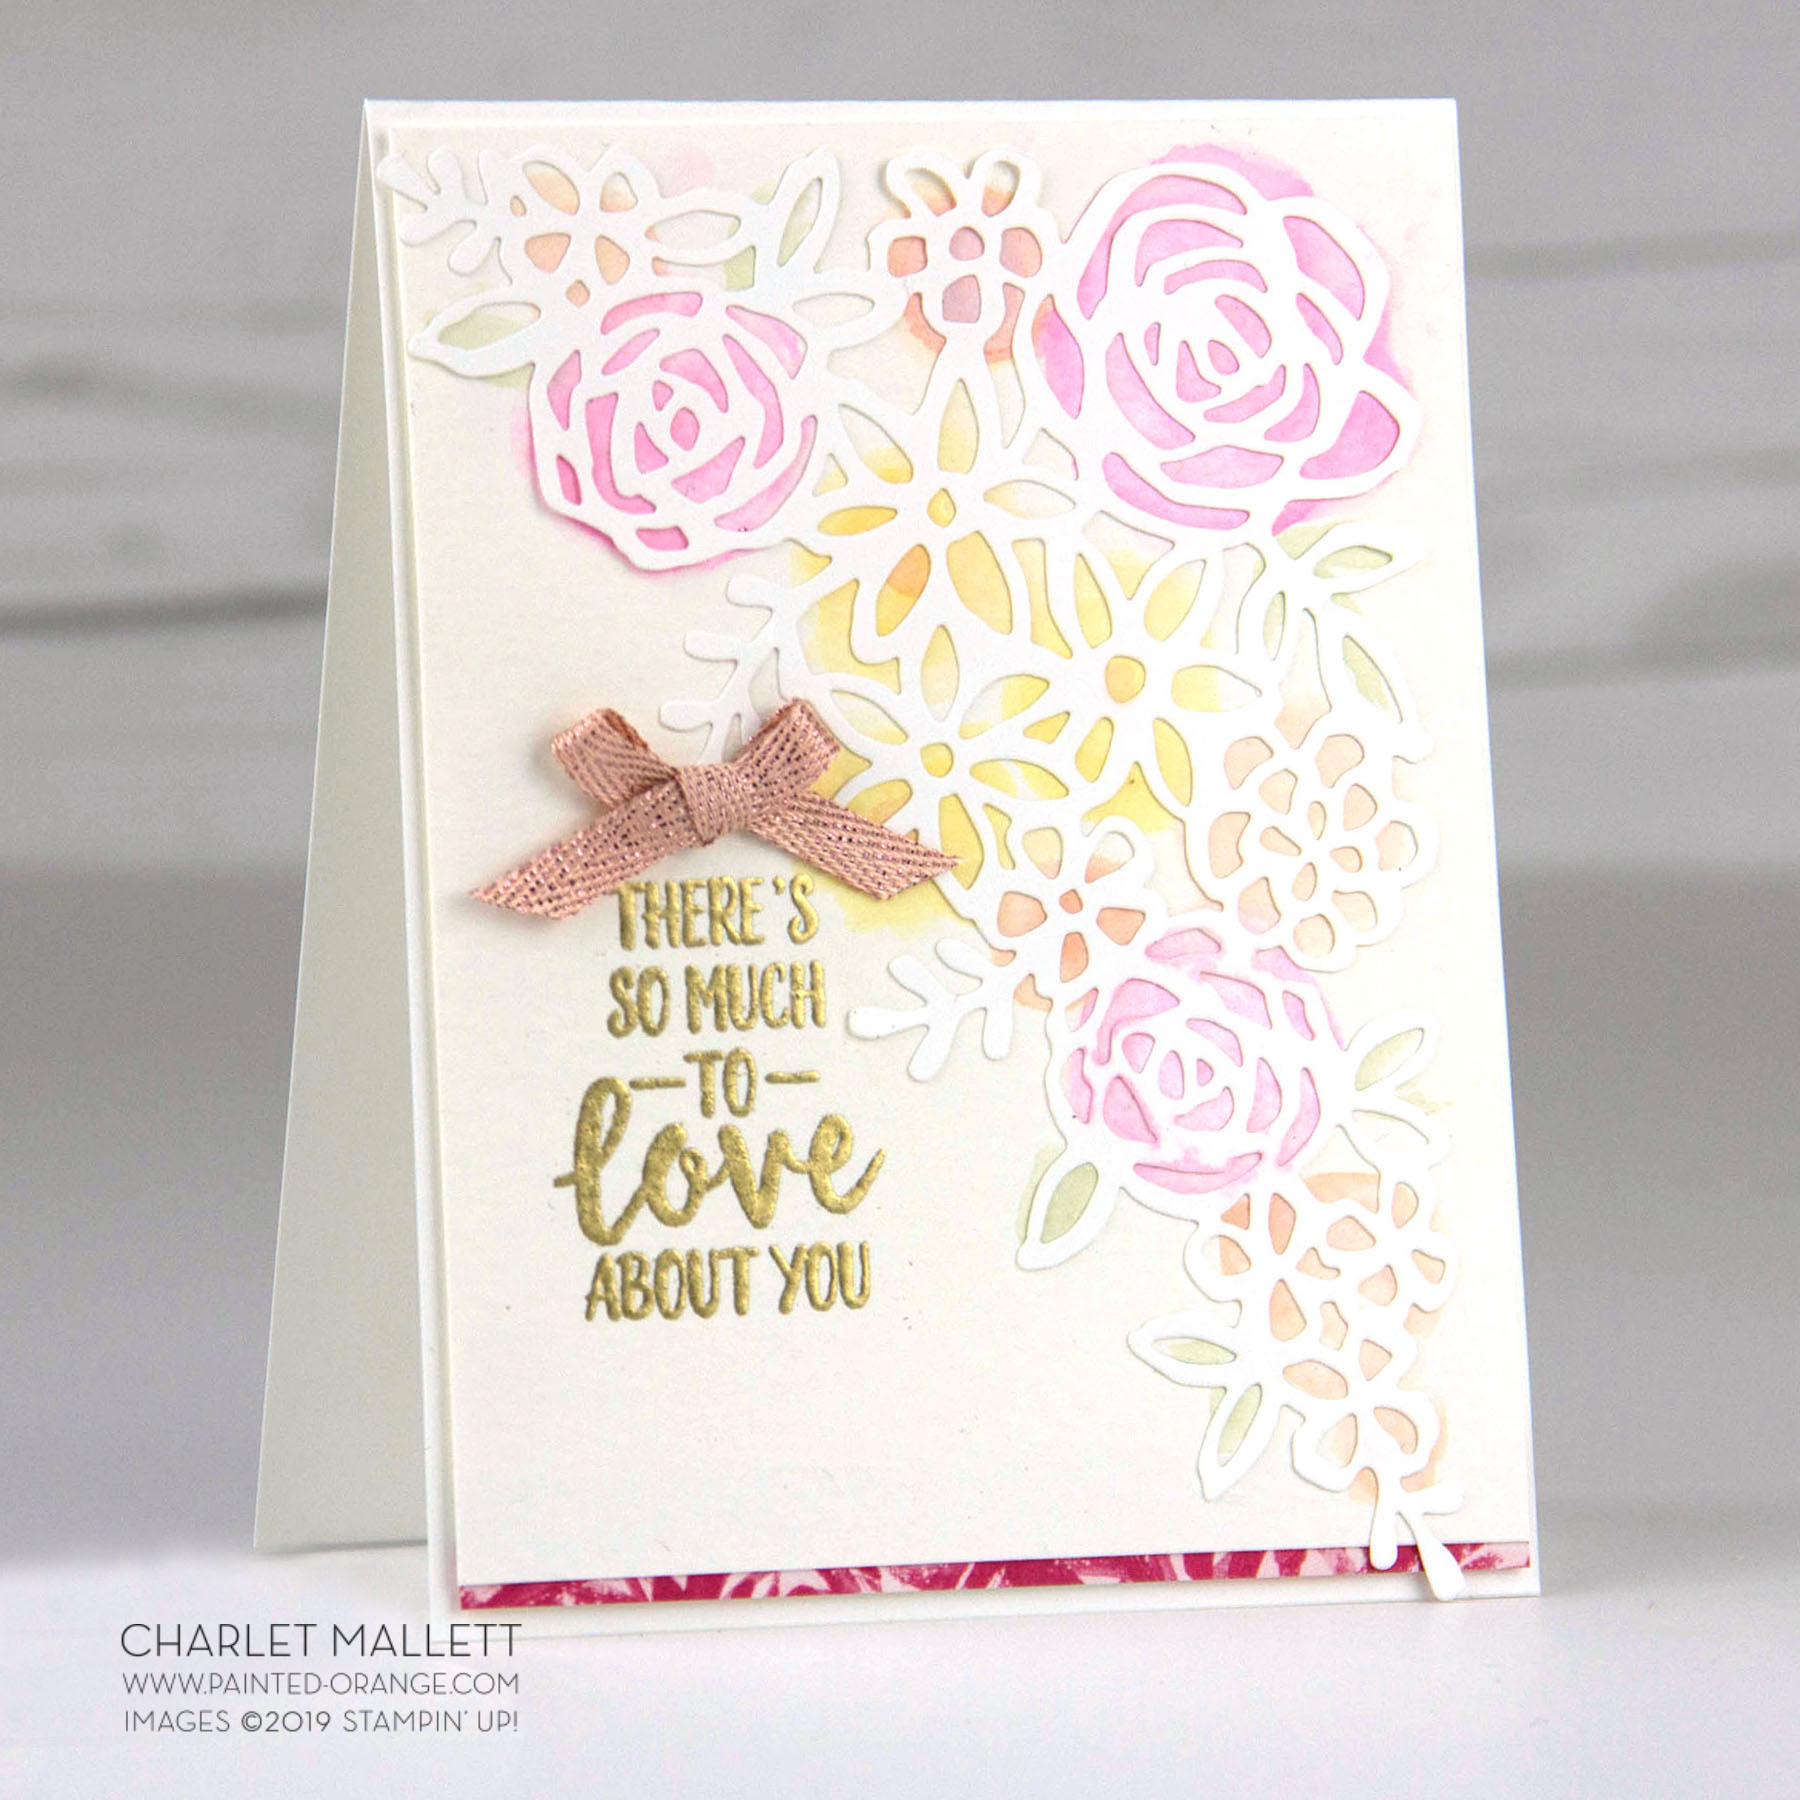 Abstract Impressions Love You Card - Charlet Mallett, Stampin' Up!